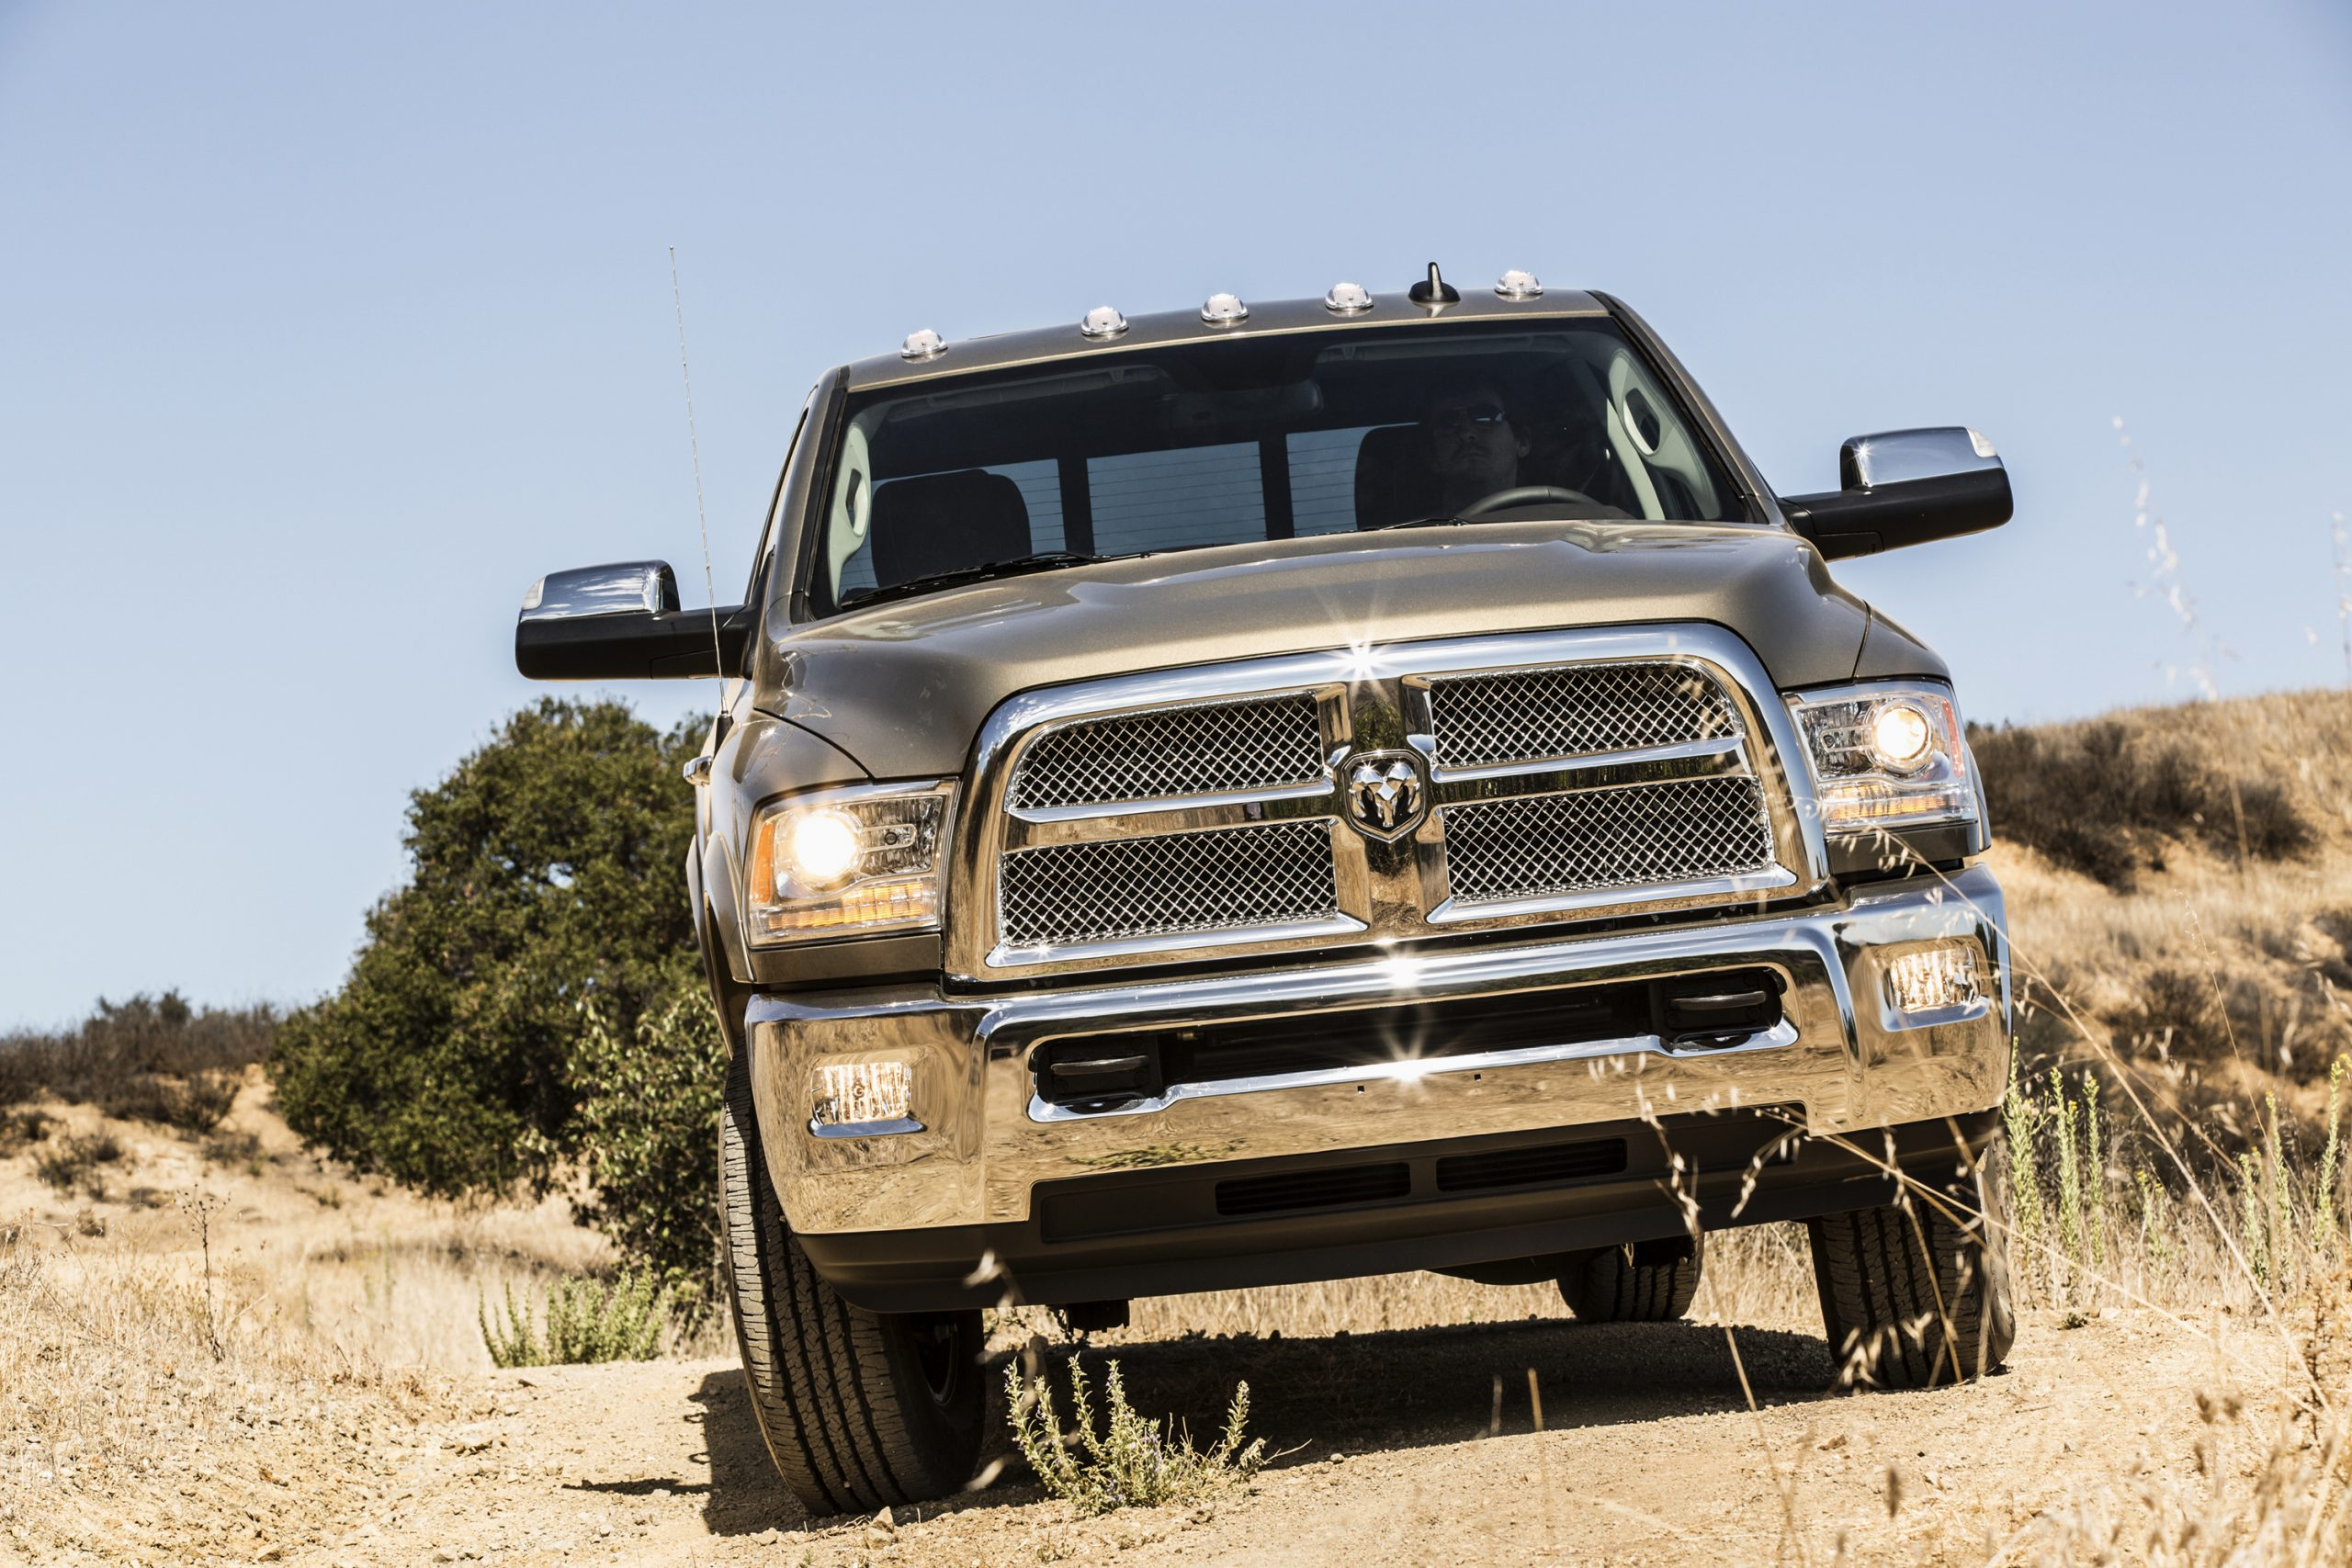 a 2014 ram 2500 like this one driving on a dirt road is the used pickup truck model rated the least reliable 2014 pickup truck